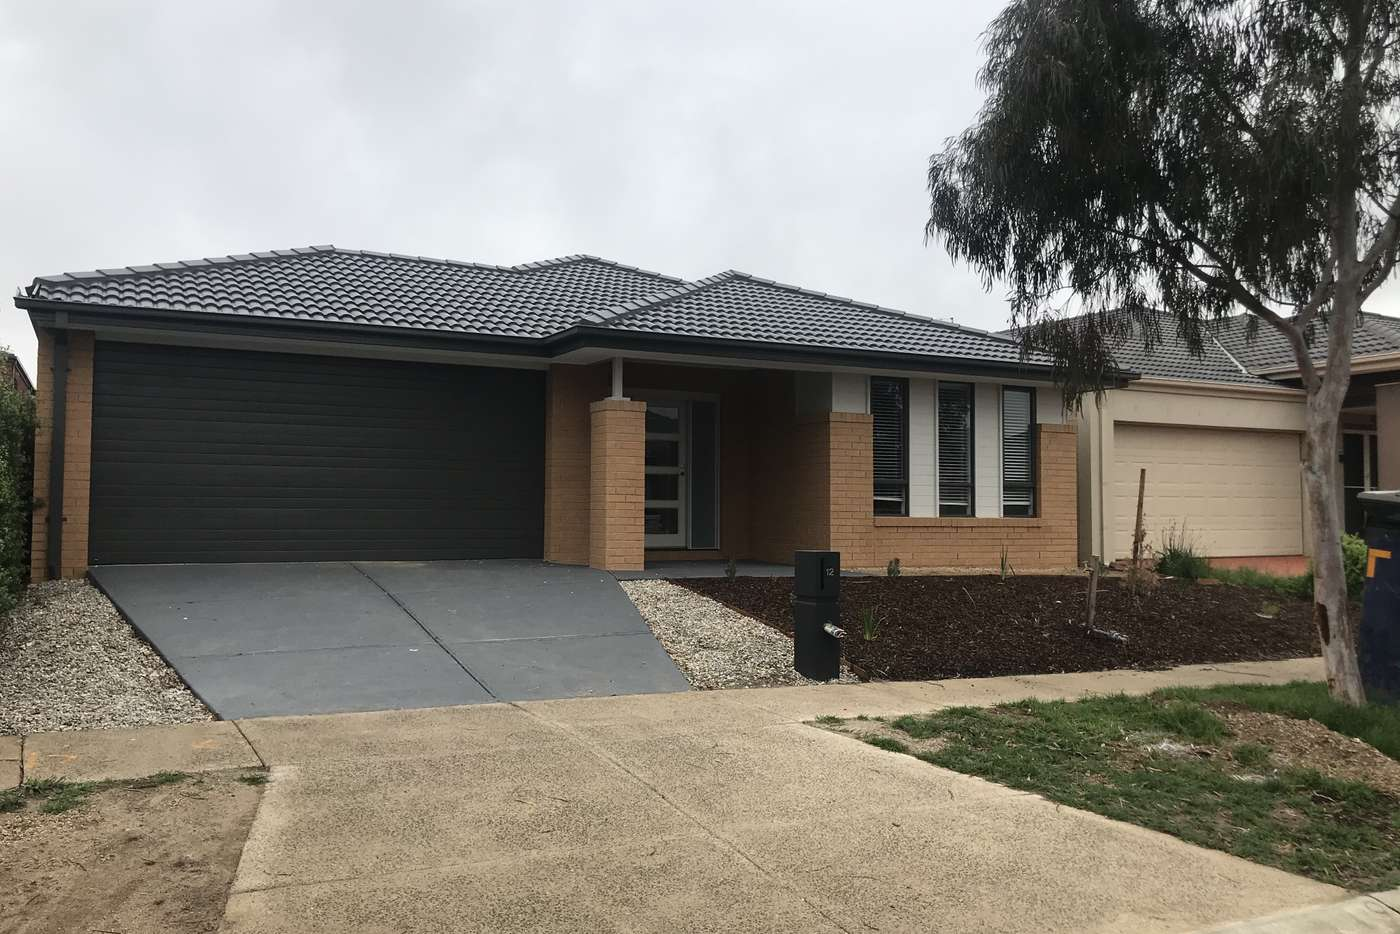 Main view of Homely house listing, 12 Mallee St, Point Cook VIC 3030